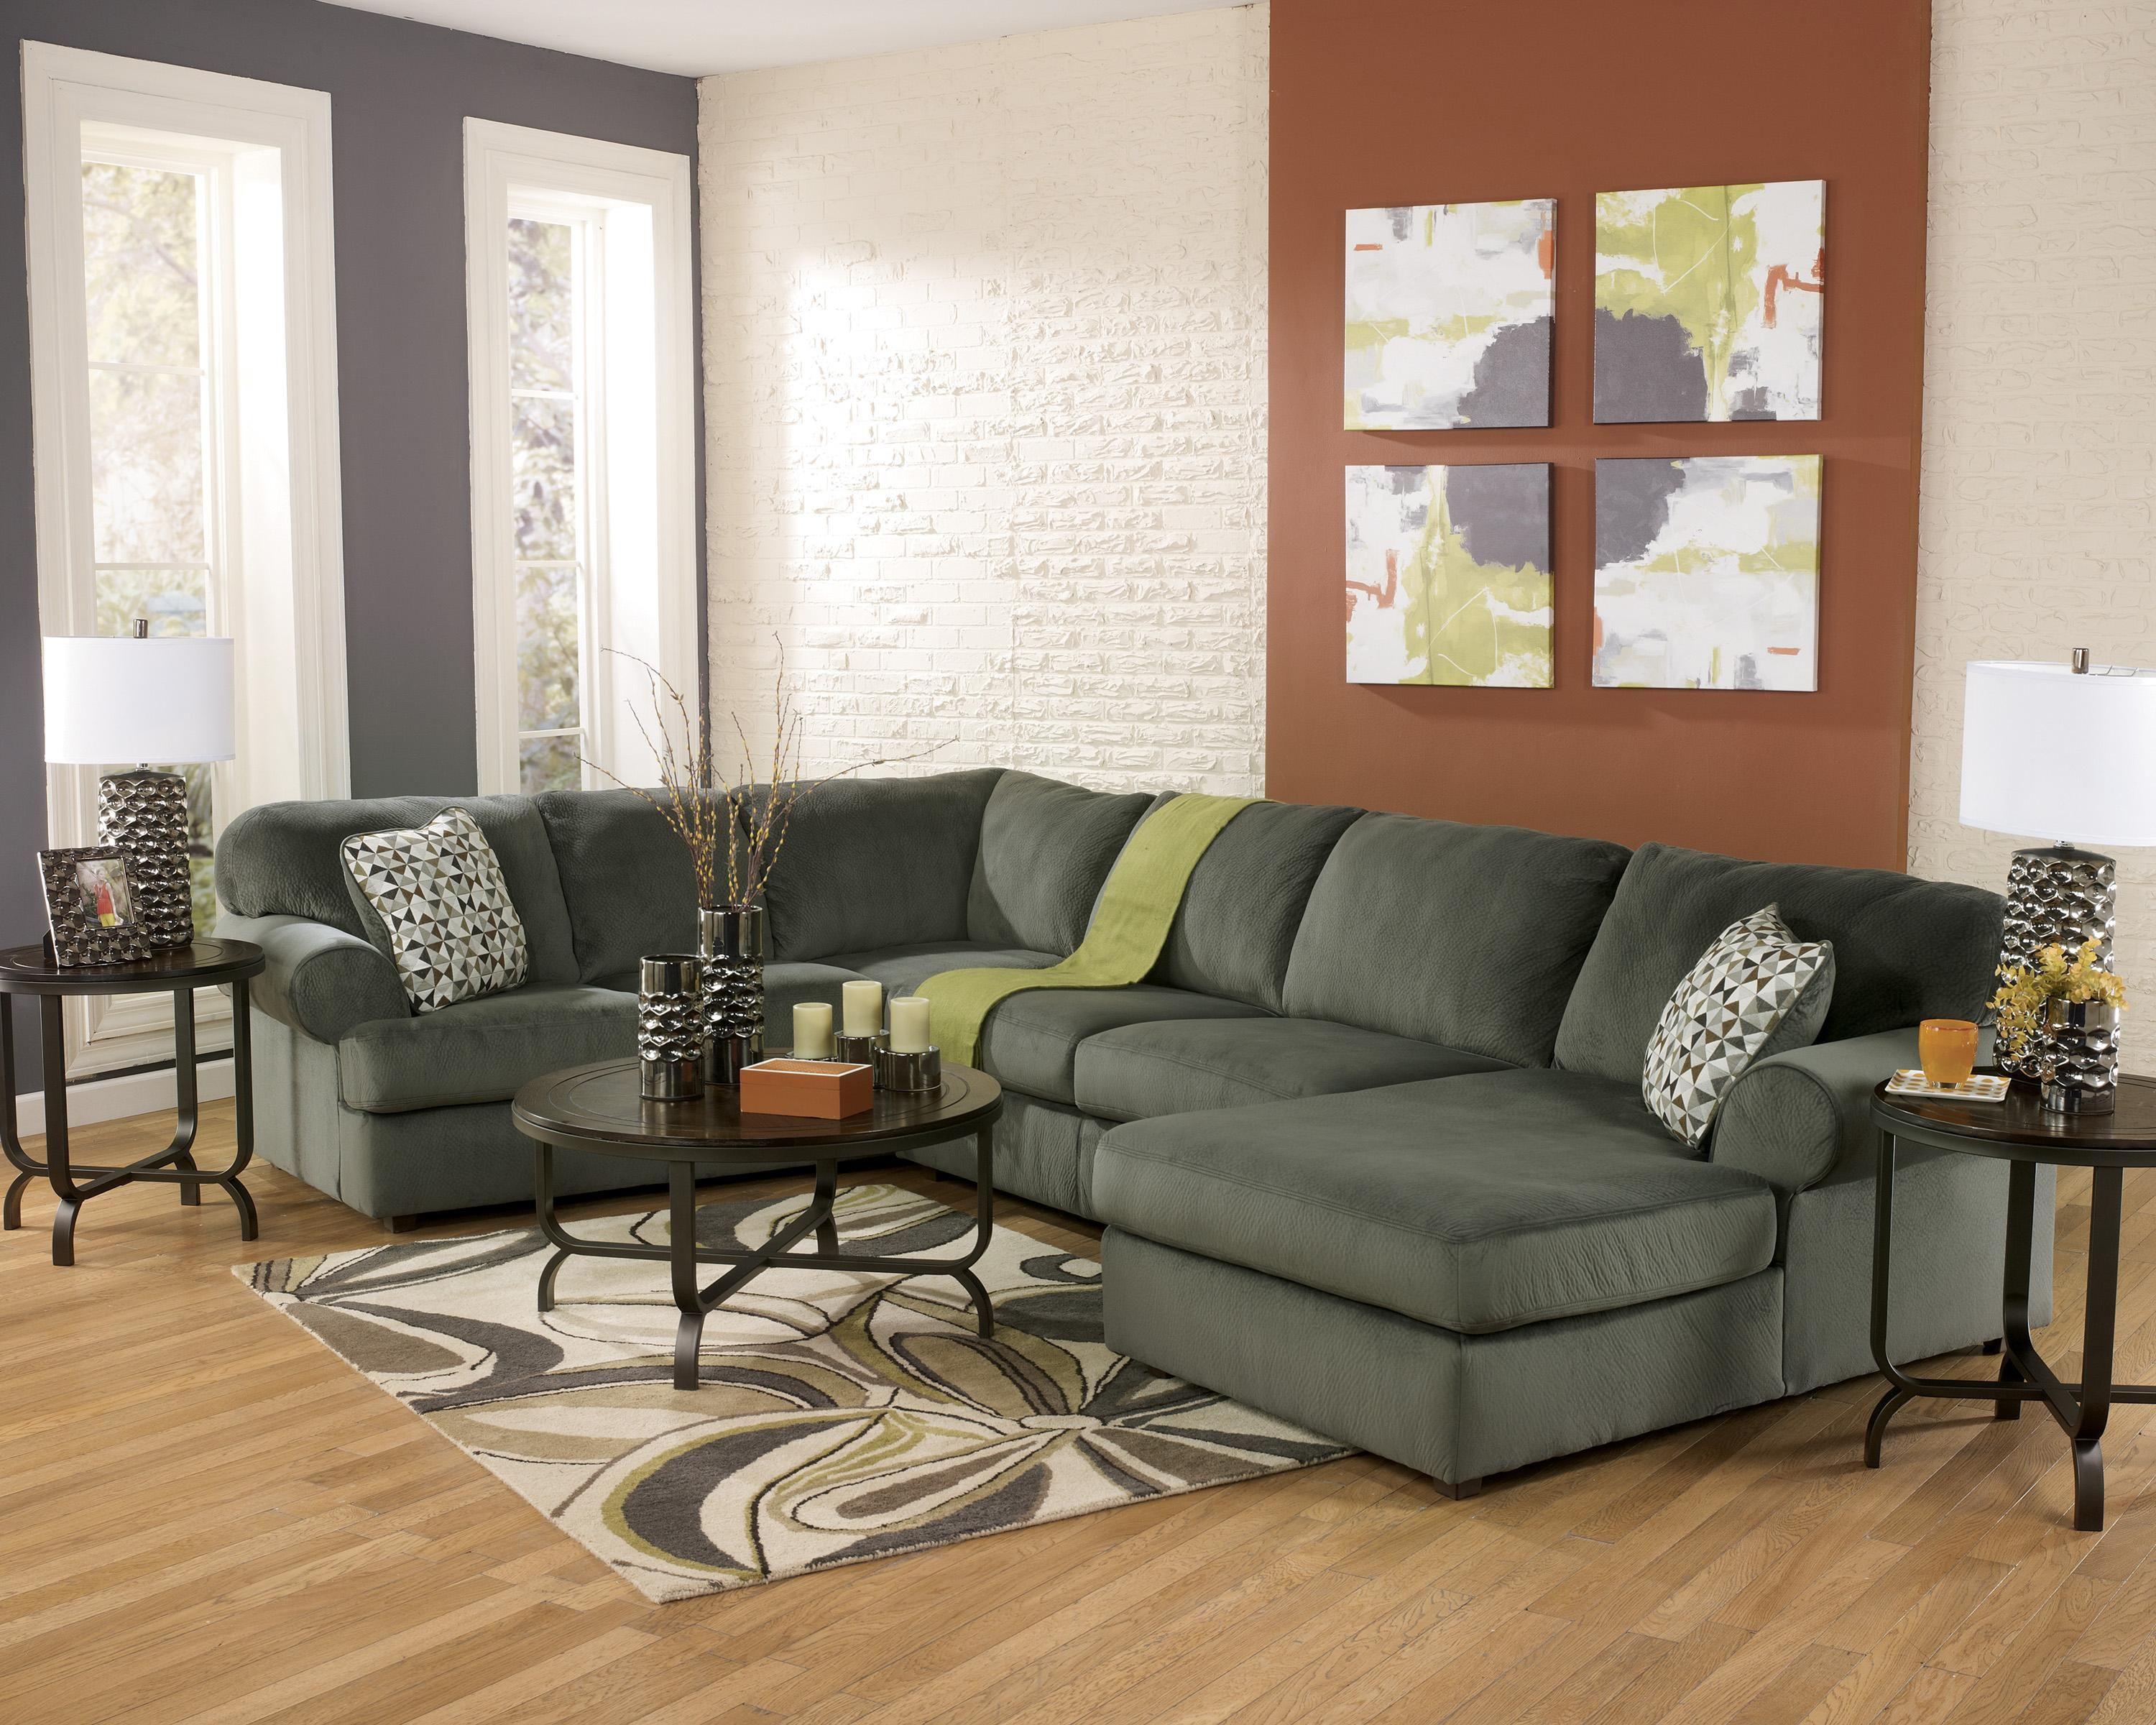 Jesse Place Pewter Casual Sectional Sofa W Right Chaise By Signature Design Ashley Marlo Furniture